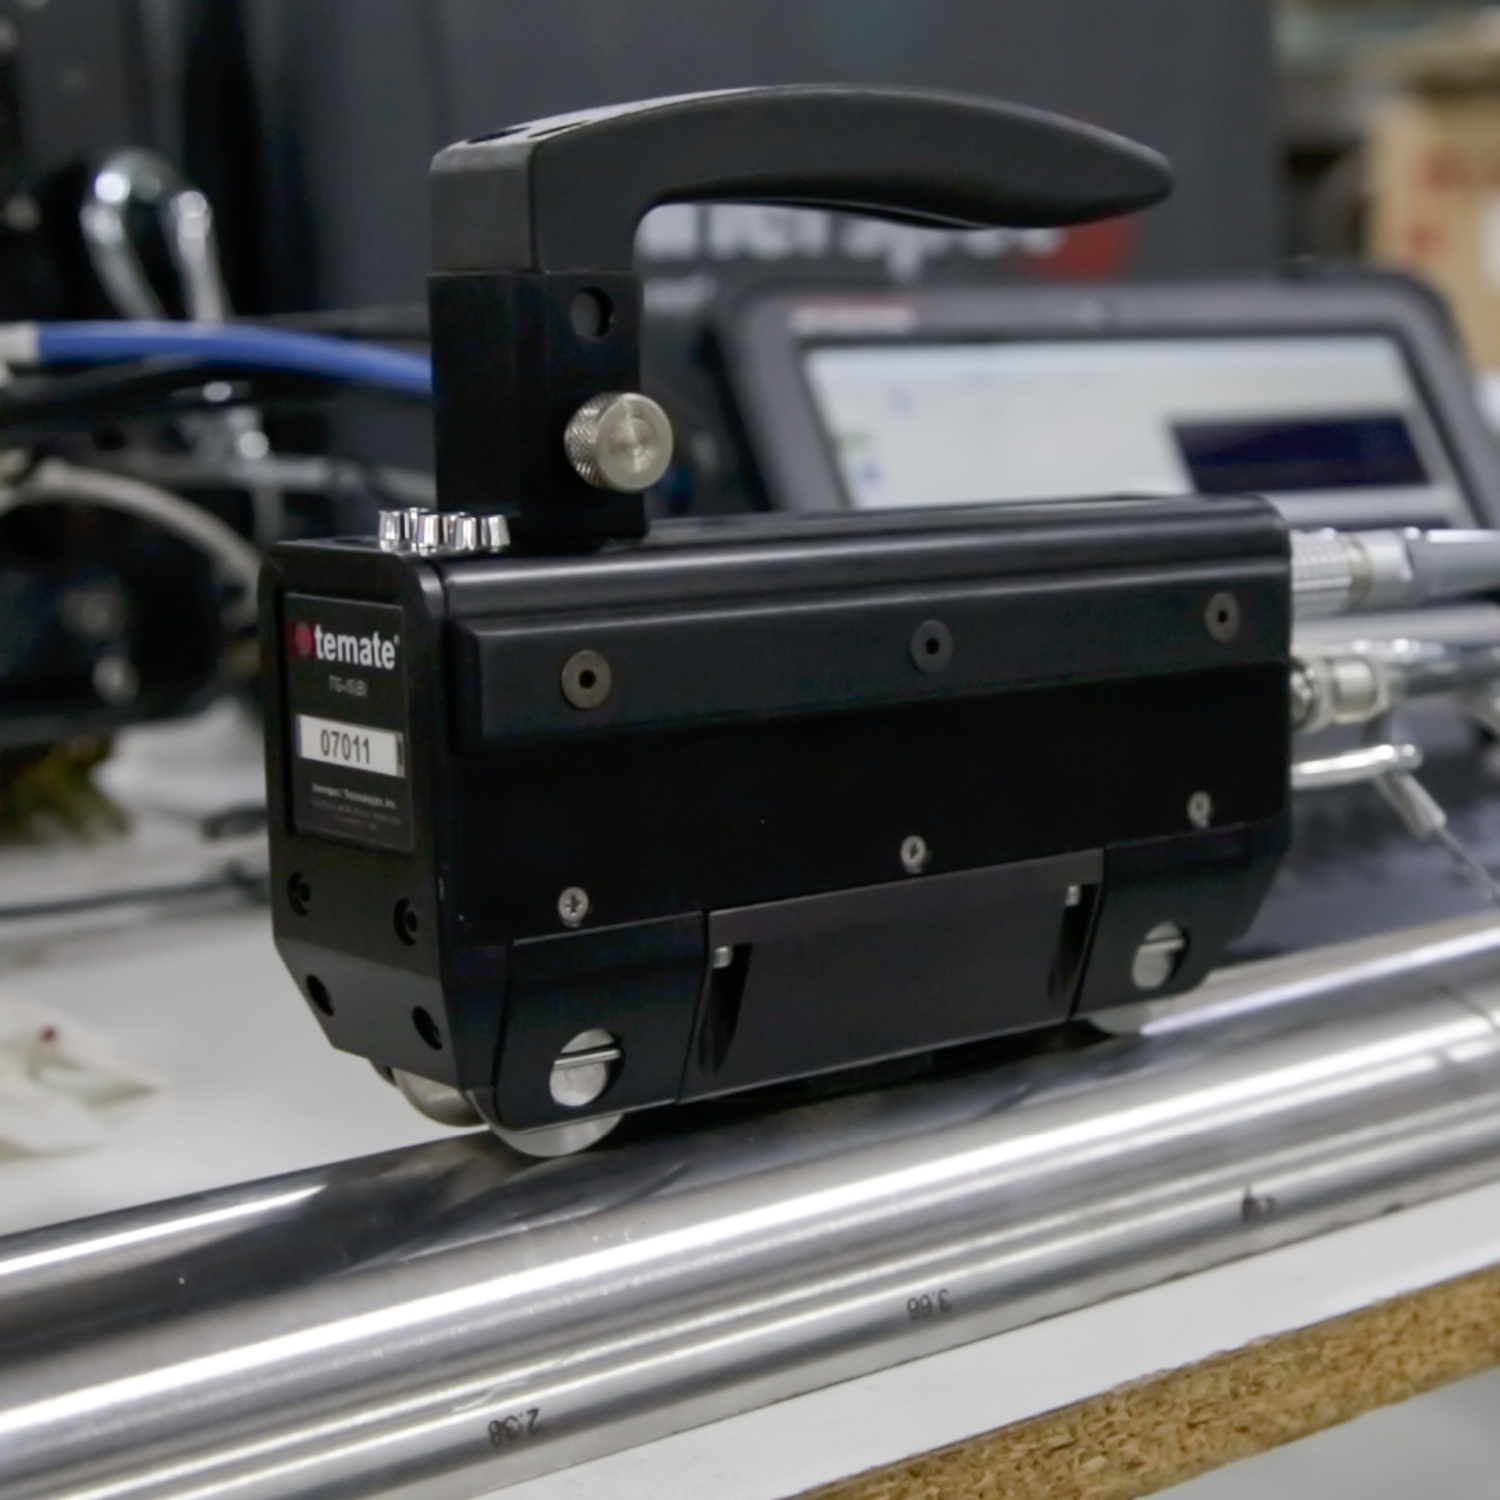 Detailed view of the scanner for boiler inspection with TG-IS (B) instrument